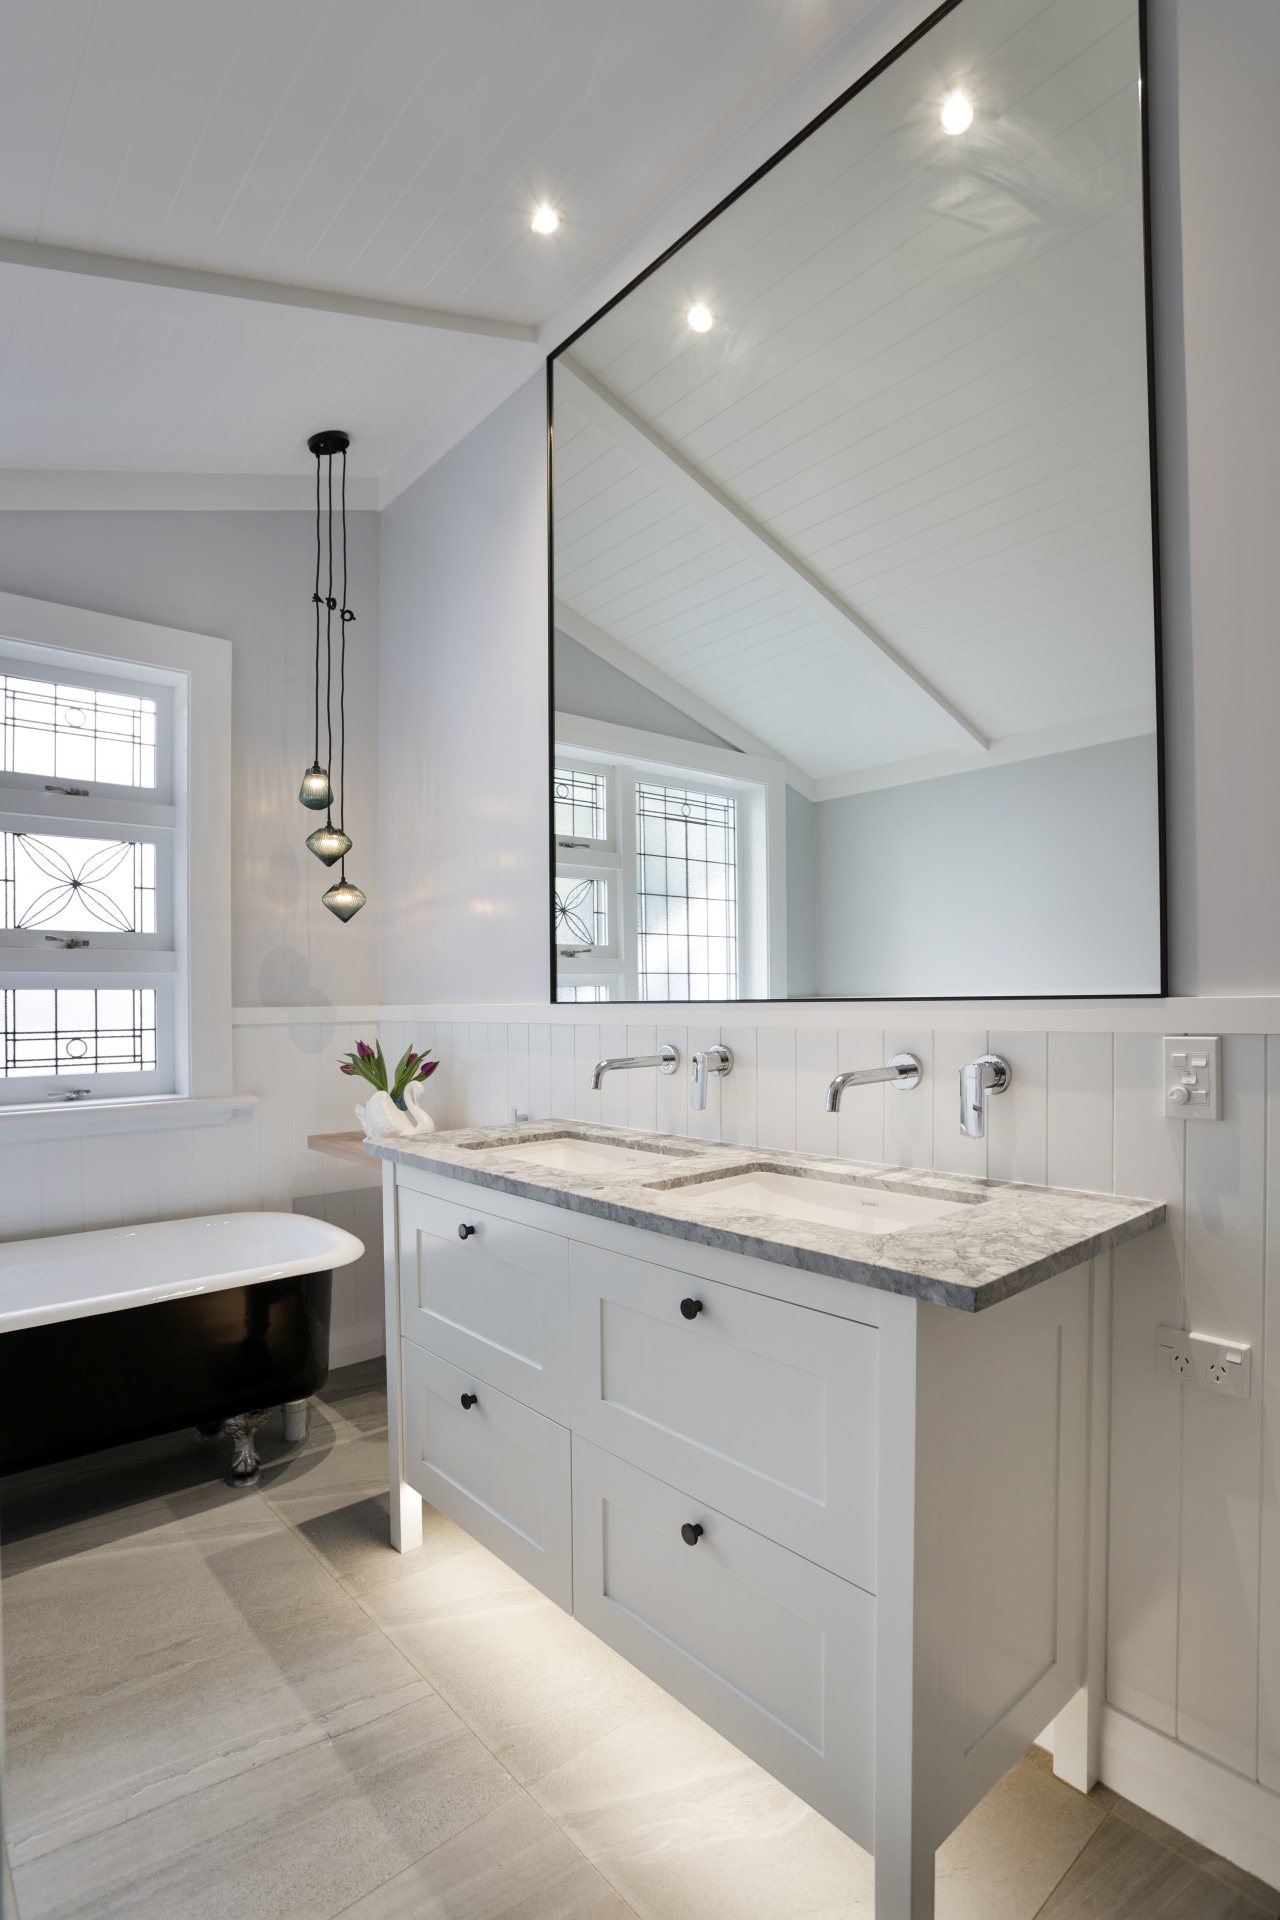 The owner had wanted a traditional look with bathroom, bathroom accessory, bathroom cabinet, cabinetry, countertop, floor, home, interior design, kitchen, room, sink, gray